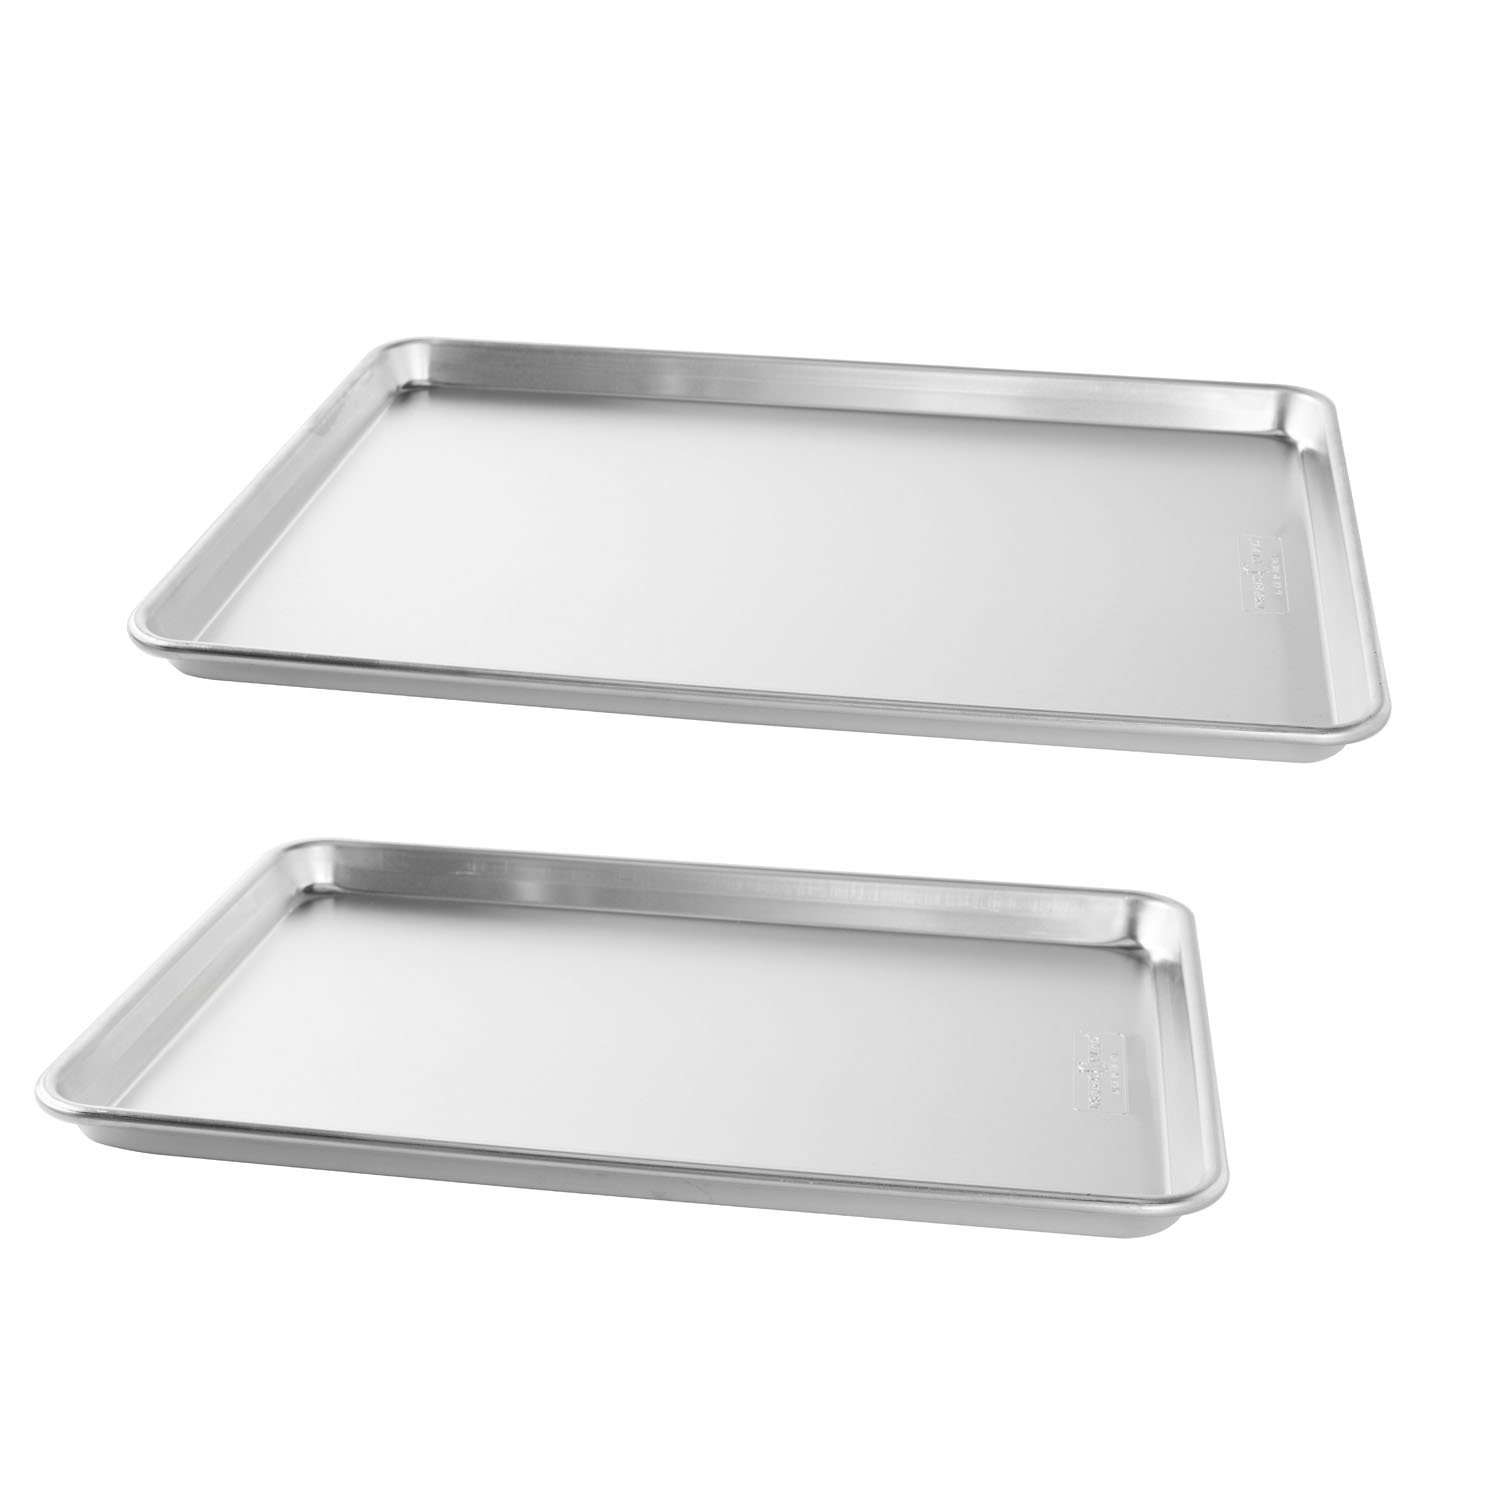 Nordic Ware Natural Aluminum Commercial Baker's Half Sheet and Big Sheet by Nordic Ware (Image #1)